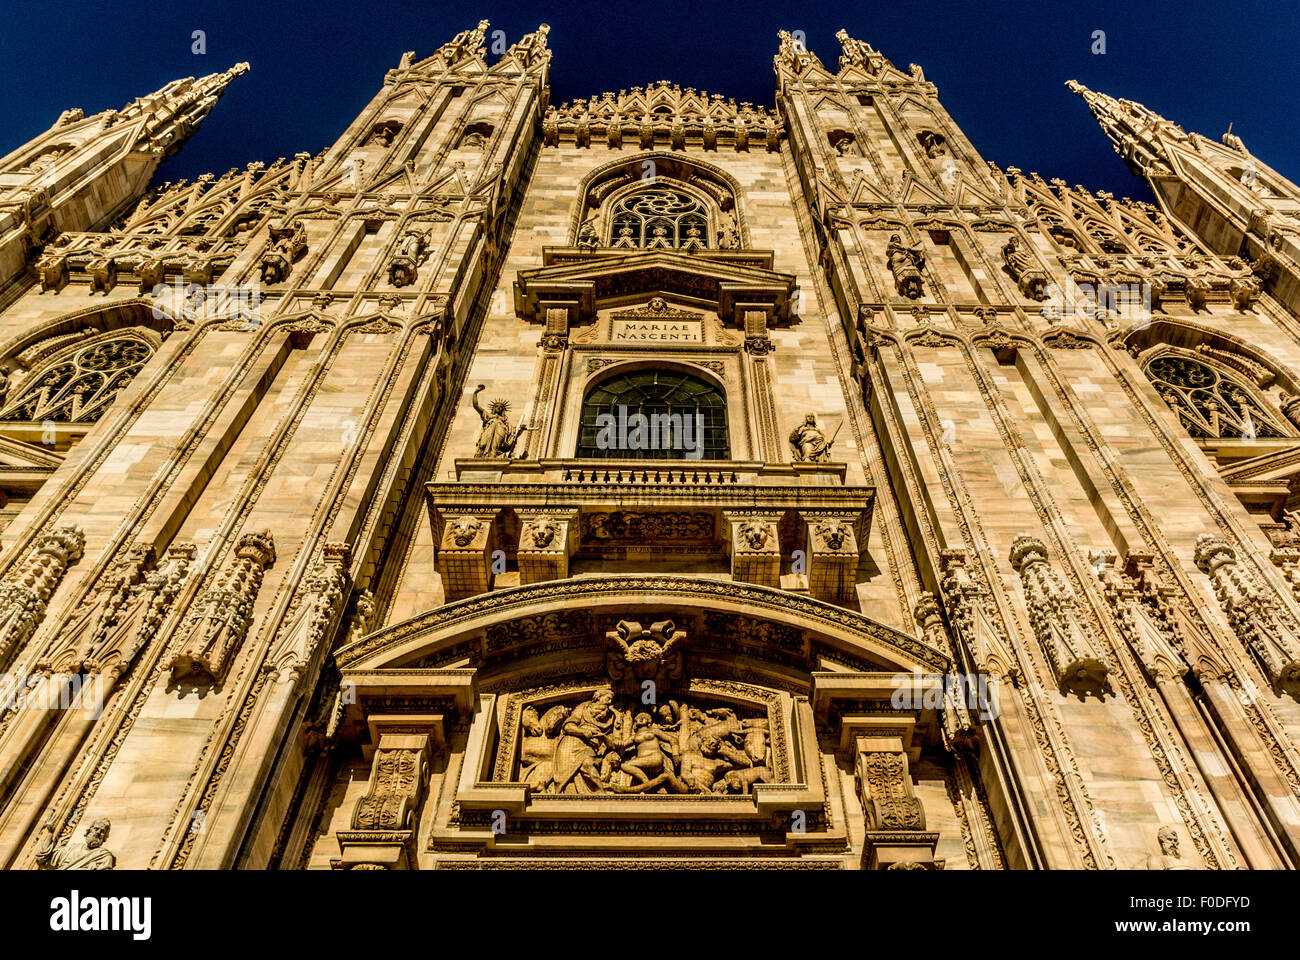 Wide angle view of exterior Milan Cathedral shot from a low angle looking upwards - Stock Image